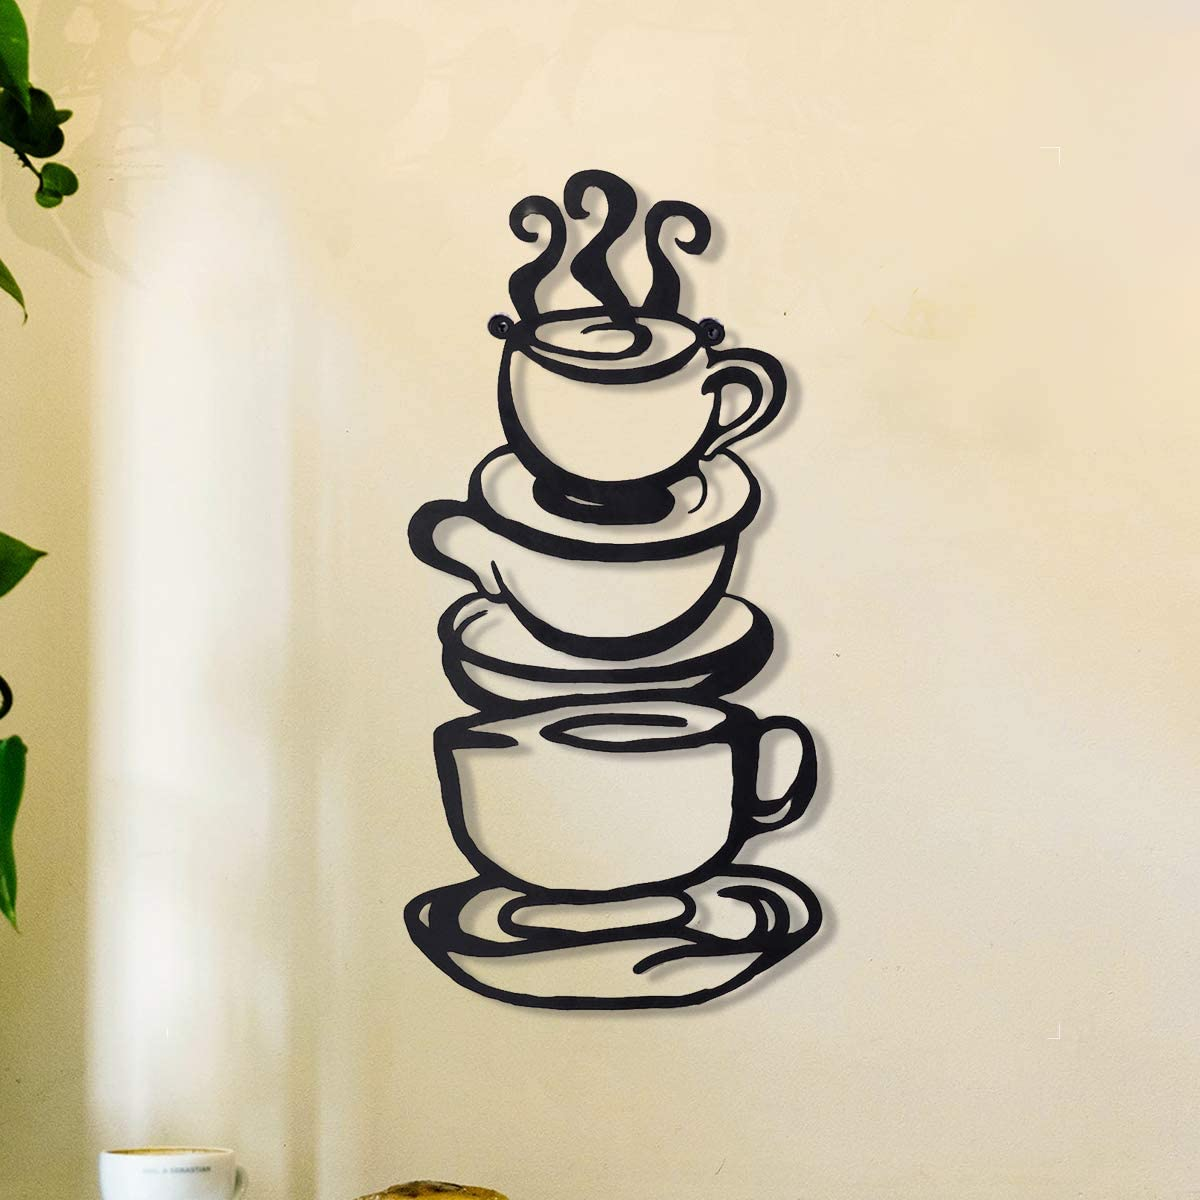 Coffee Cup Metal Wall Art, Farmhouse Kitchen Restaurant Decor Coffee Bar Sign, Black